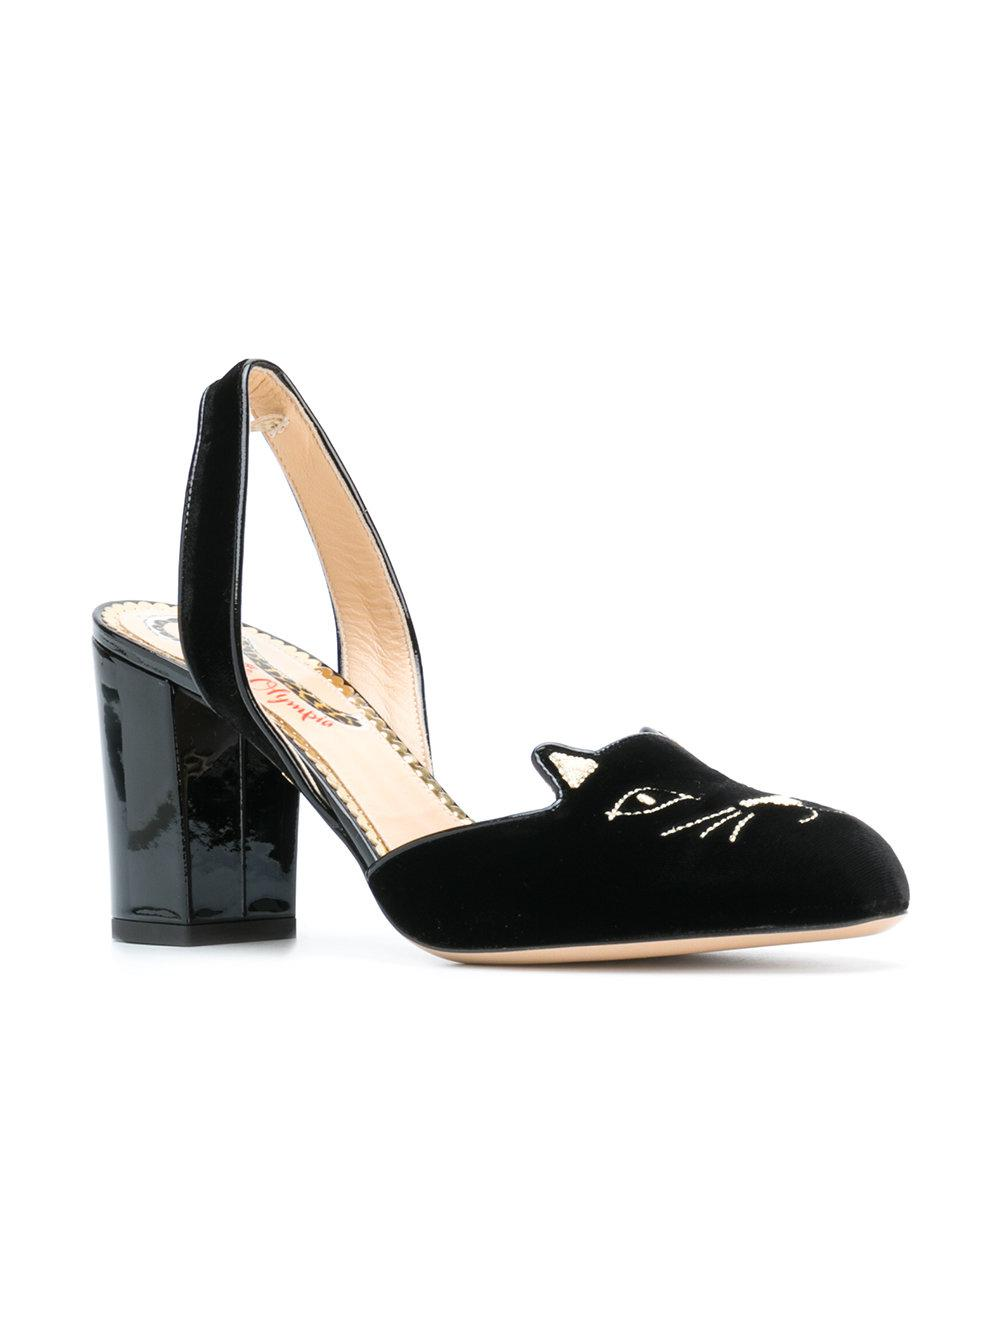 7de4a941d244 Lyst - Charlotte Olympia Kitty Slingback Pumps in Black - Save 62%